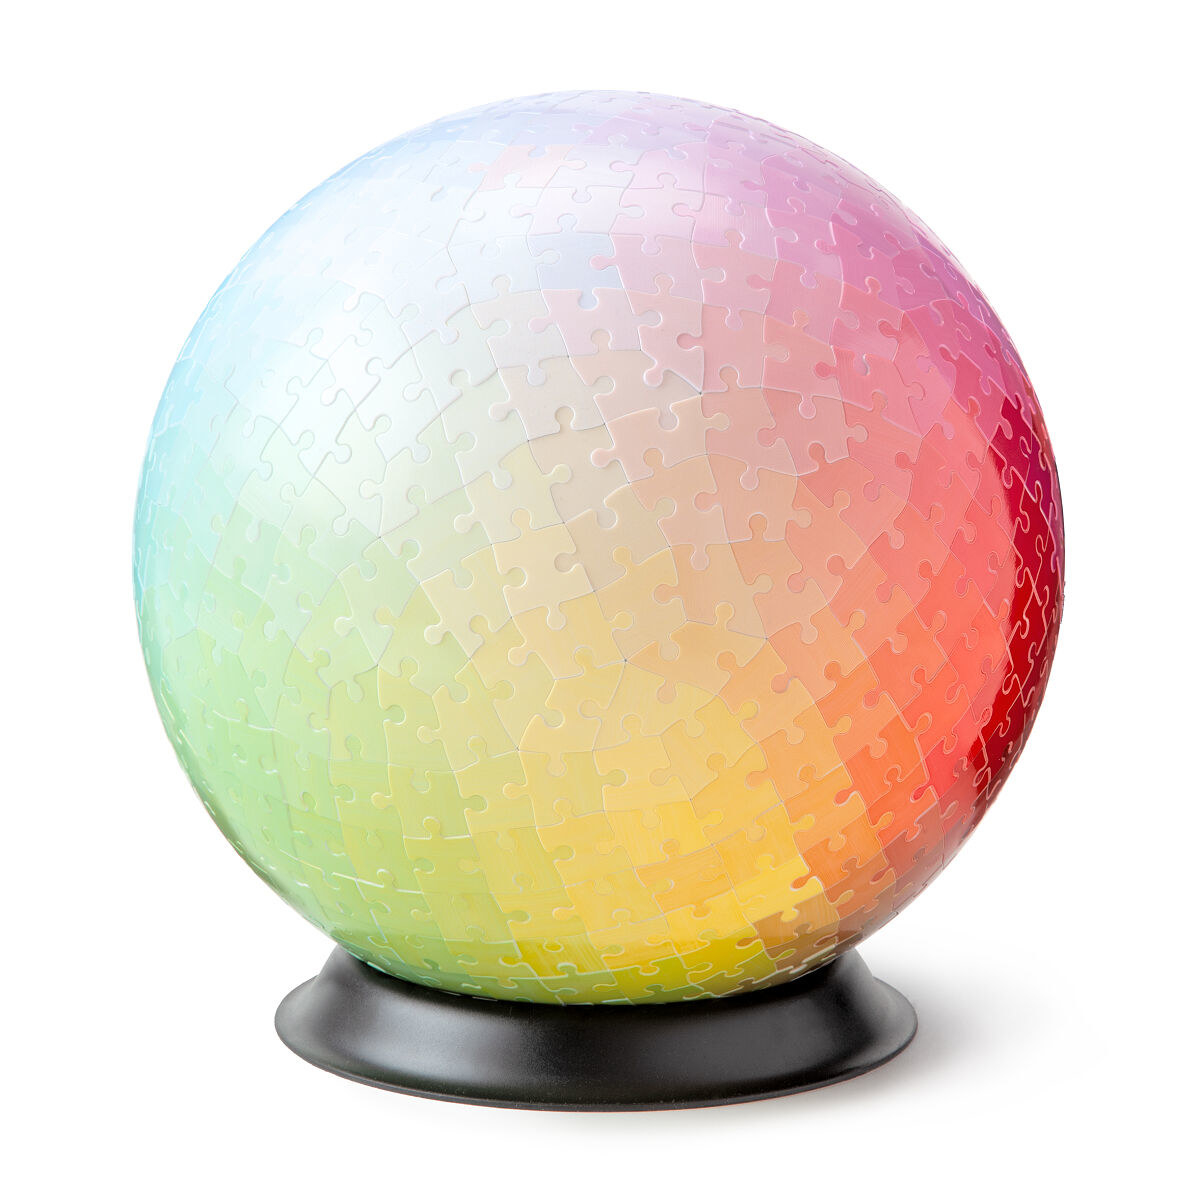 The completed spherical puzzle on the display stand